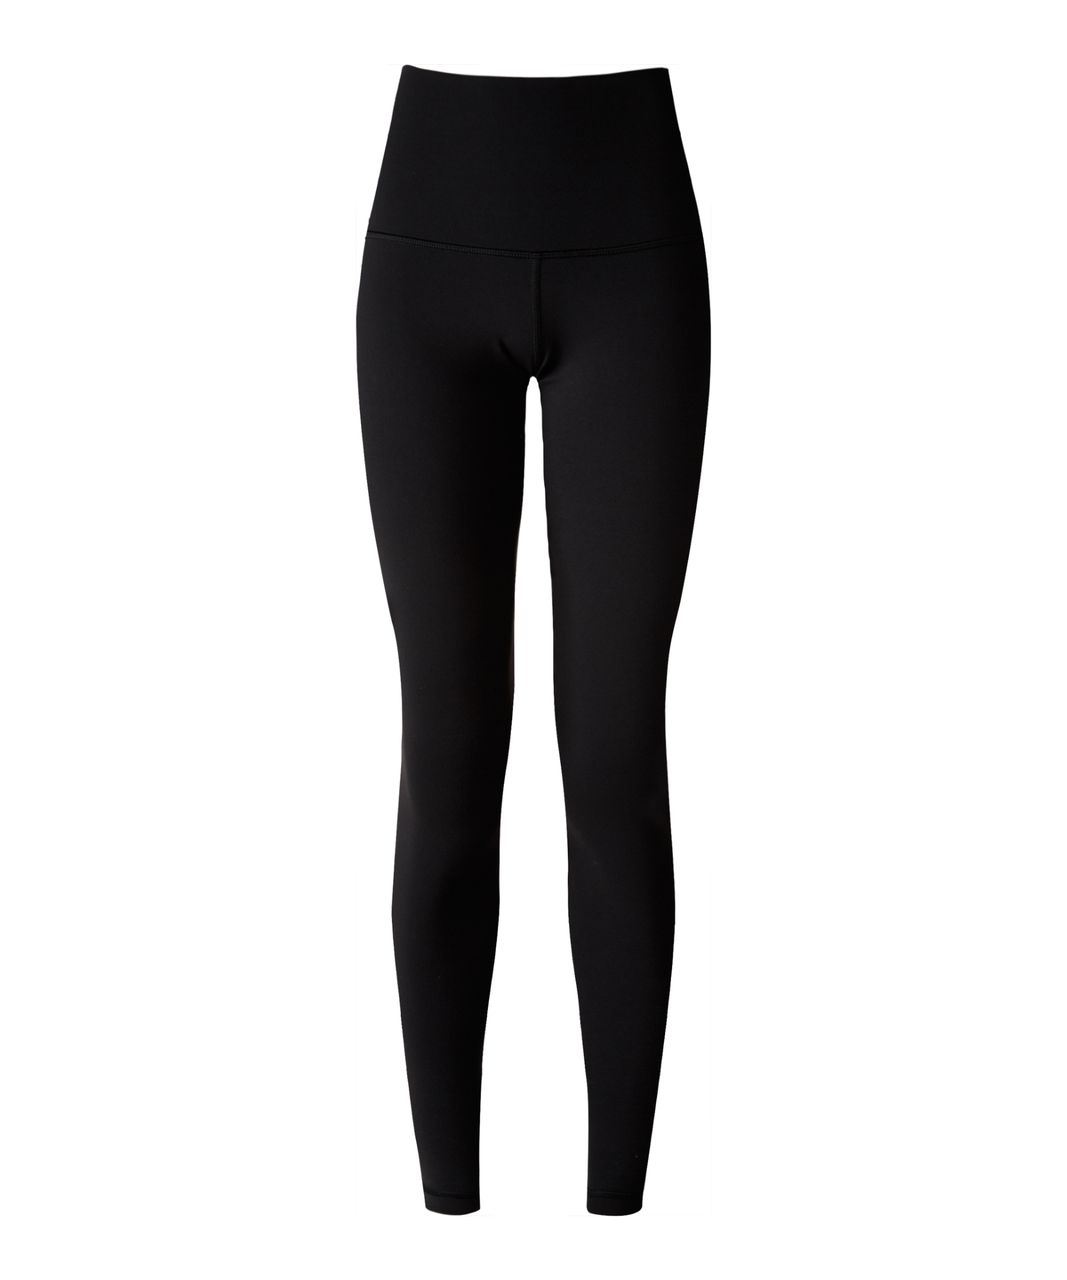 Lululemon Wunder Under Pant (Roll Down) - Black